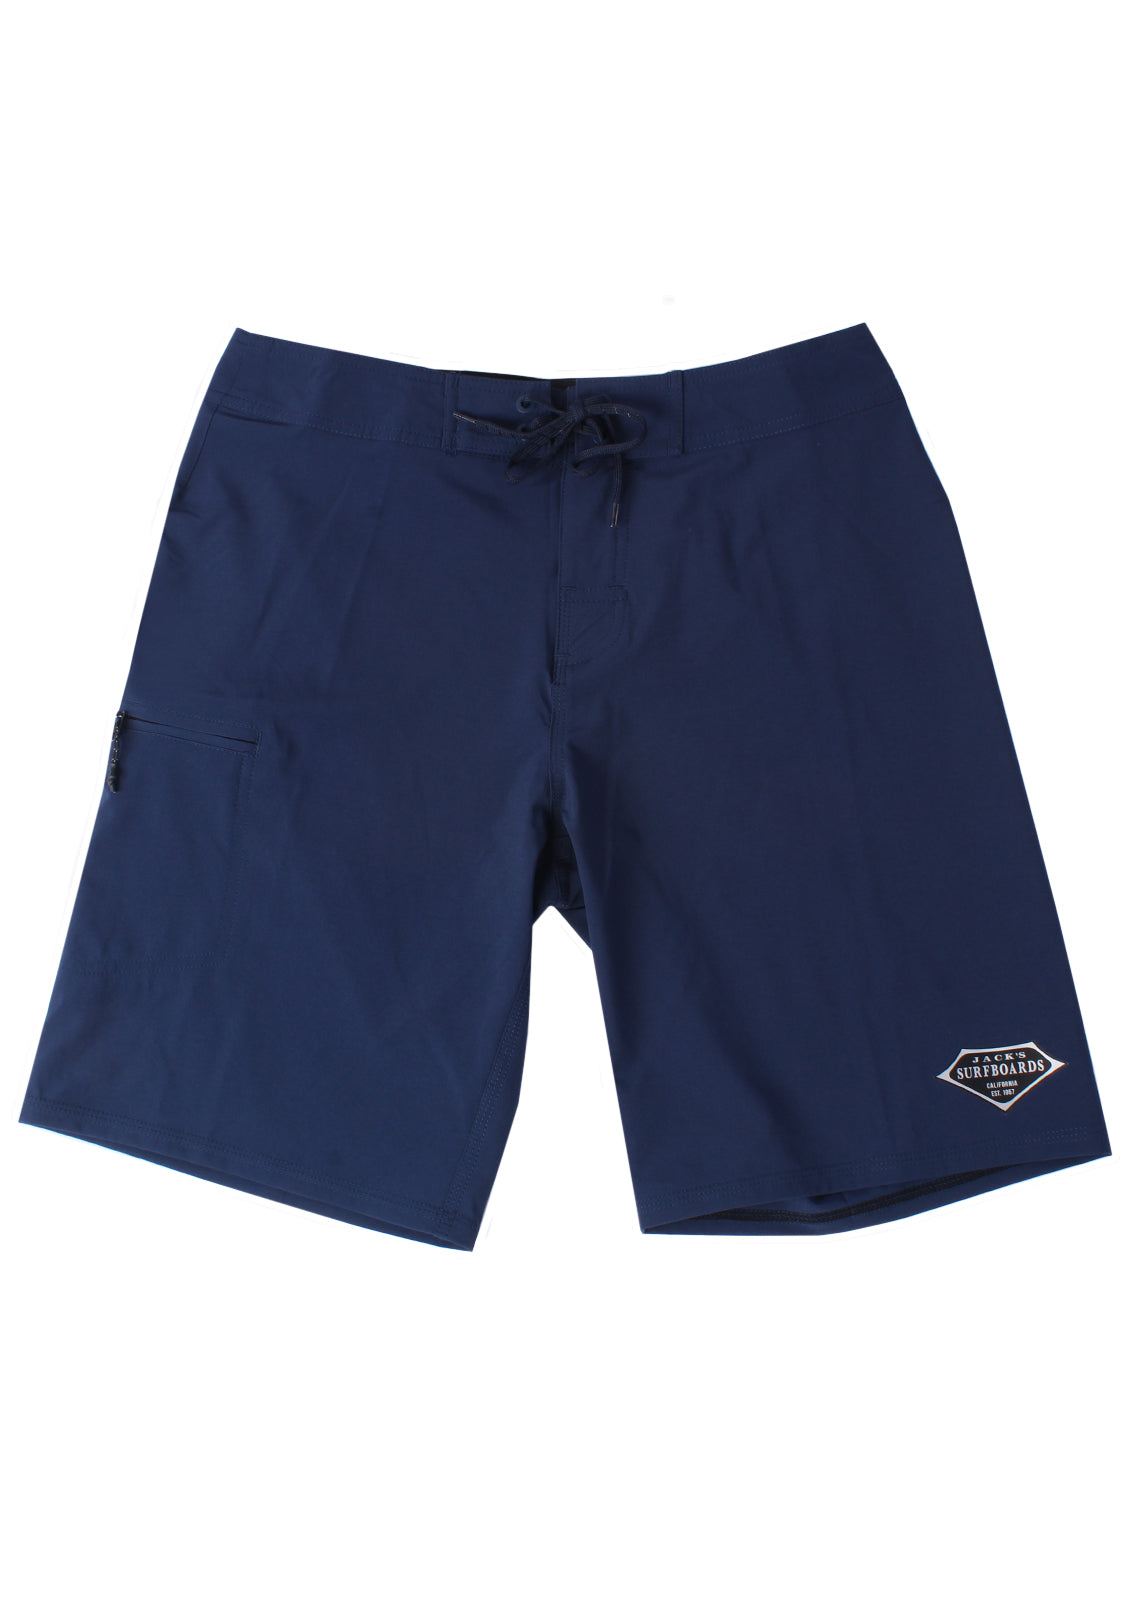 Jacks Surfboards Vapor Boardshort